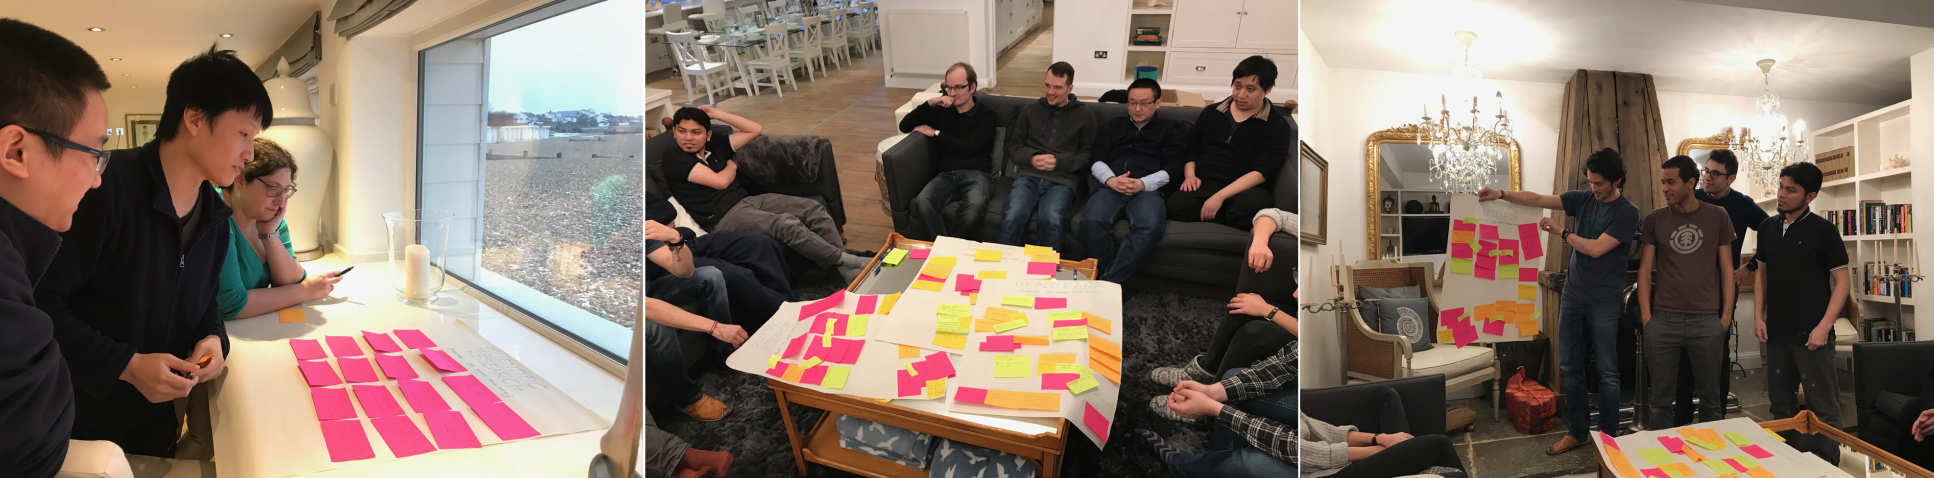 Photos of brainstorming activities using lots of postit notes